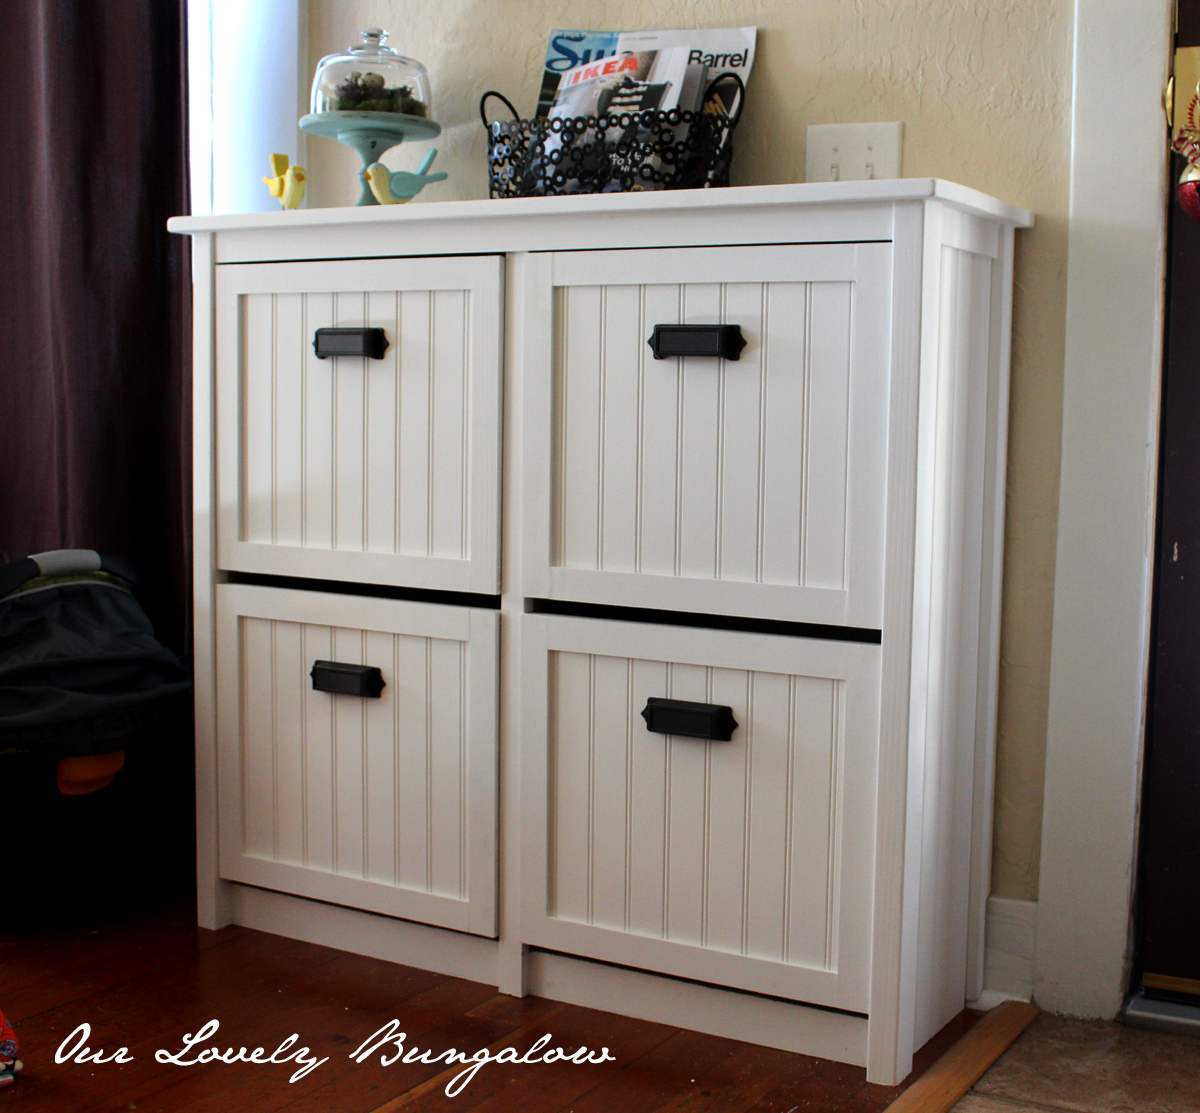 Shoe Organization Hacks: Revamping An Ikea Shoe Cabinet